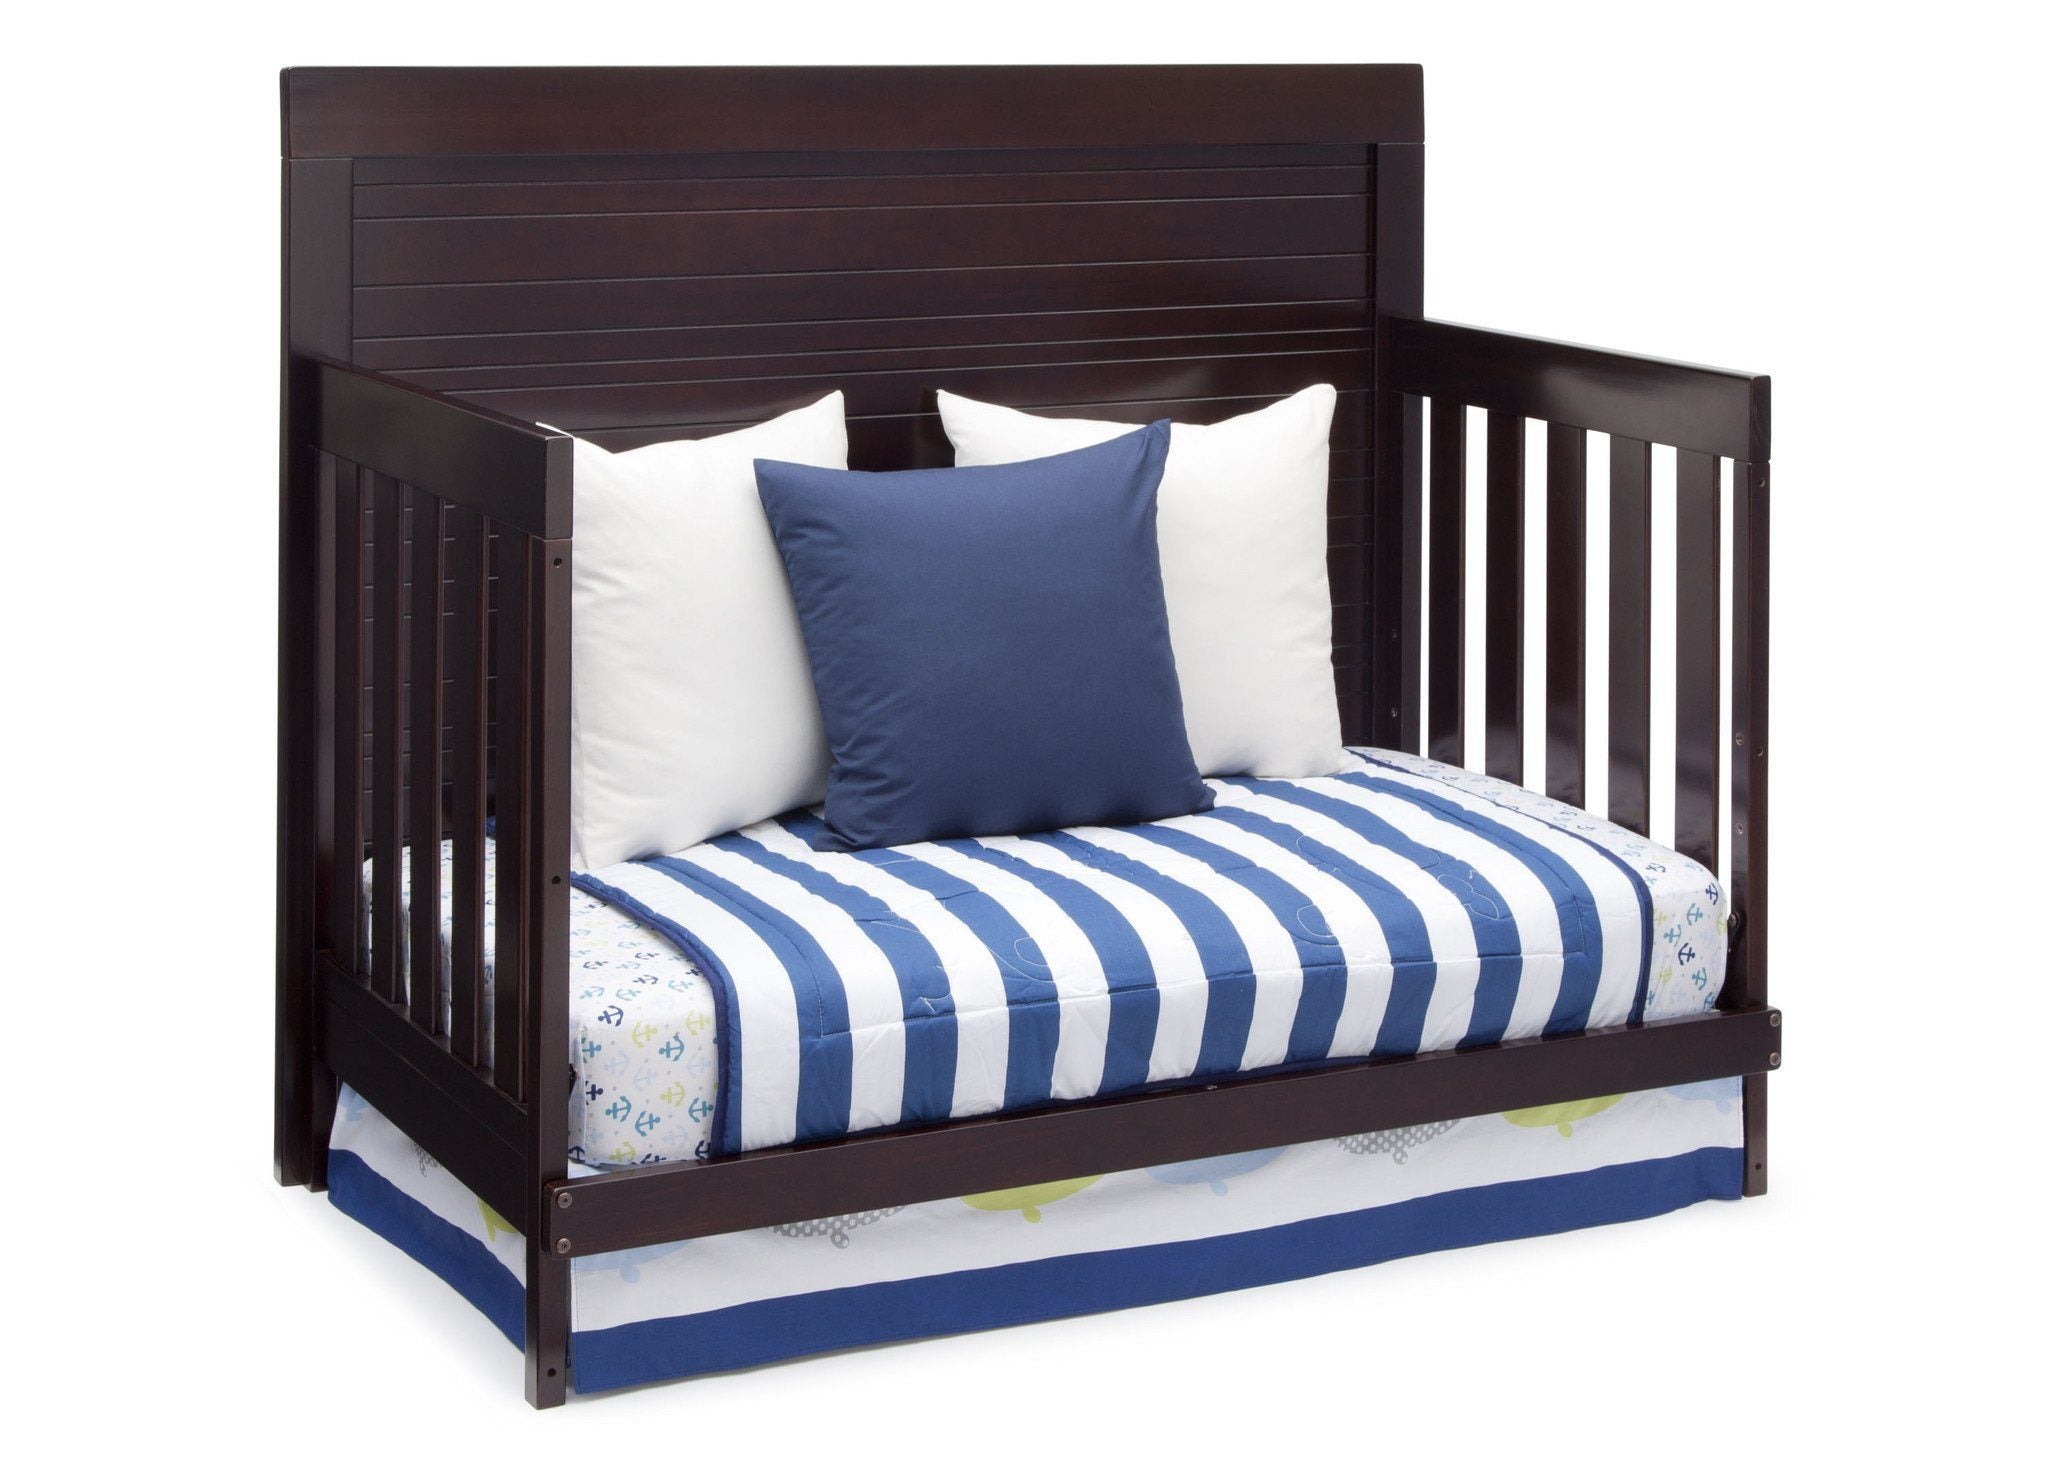 Simmons Kids Black Espresso (907) Simmons Kids Rowen Crib (320180), Side View with Day Bed Conversion b4b